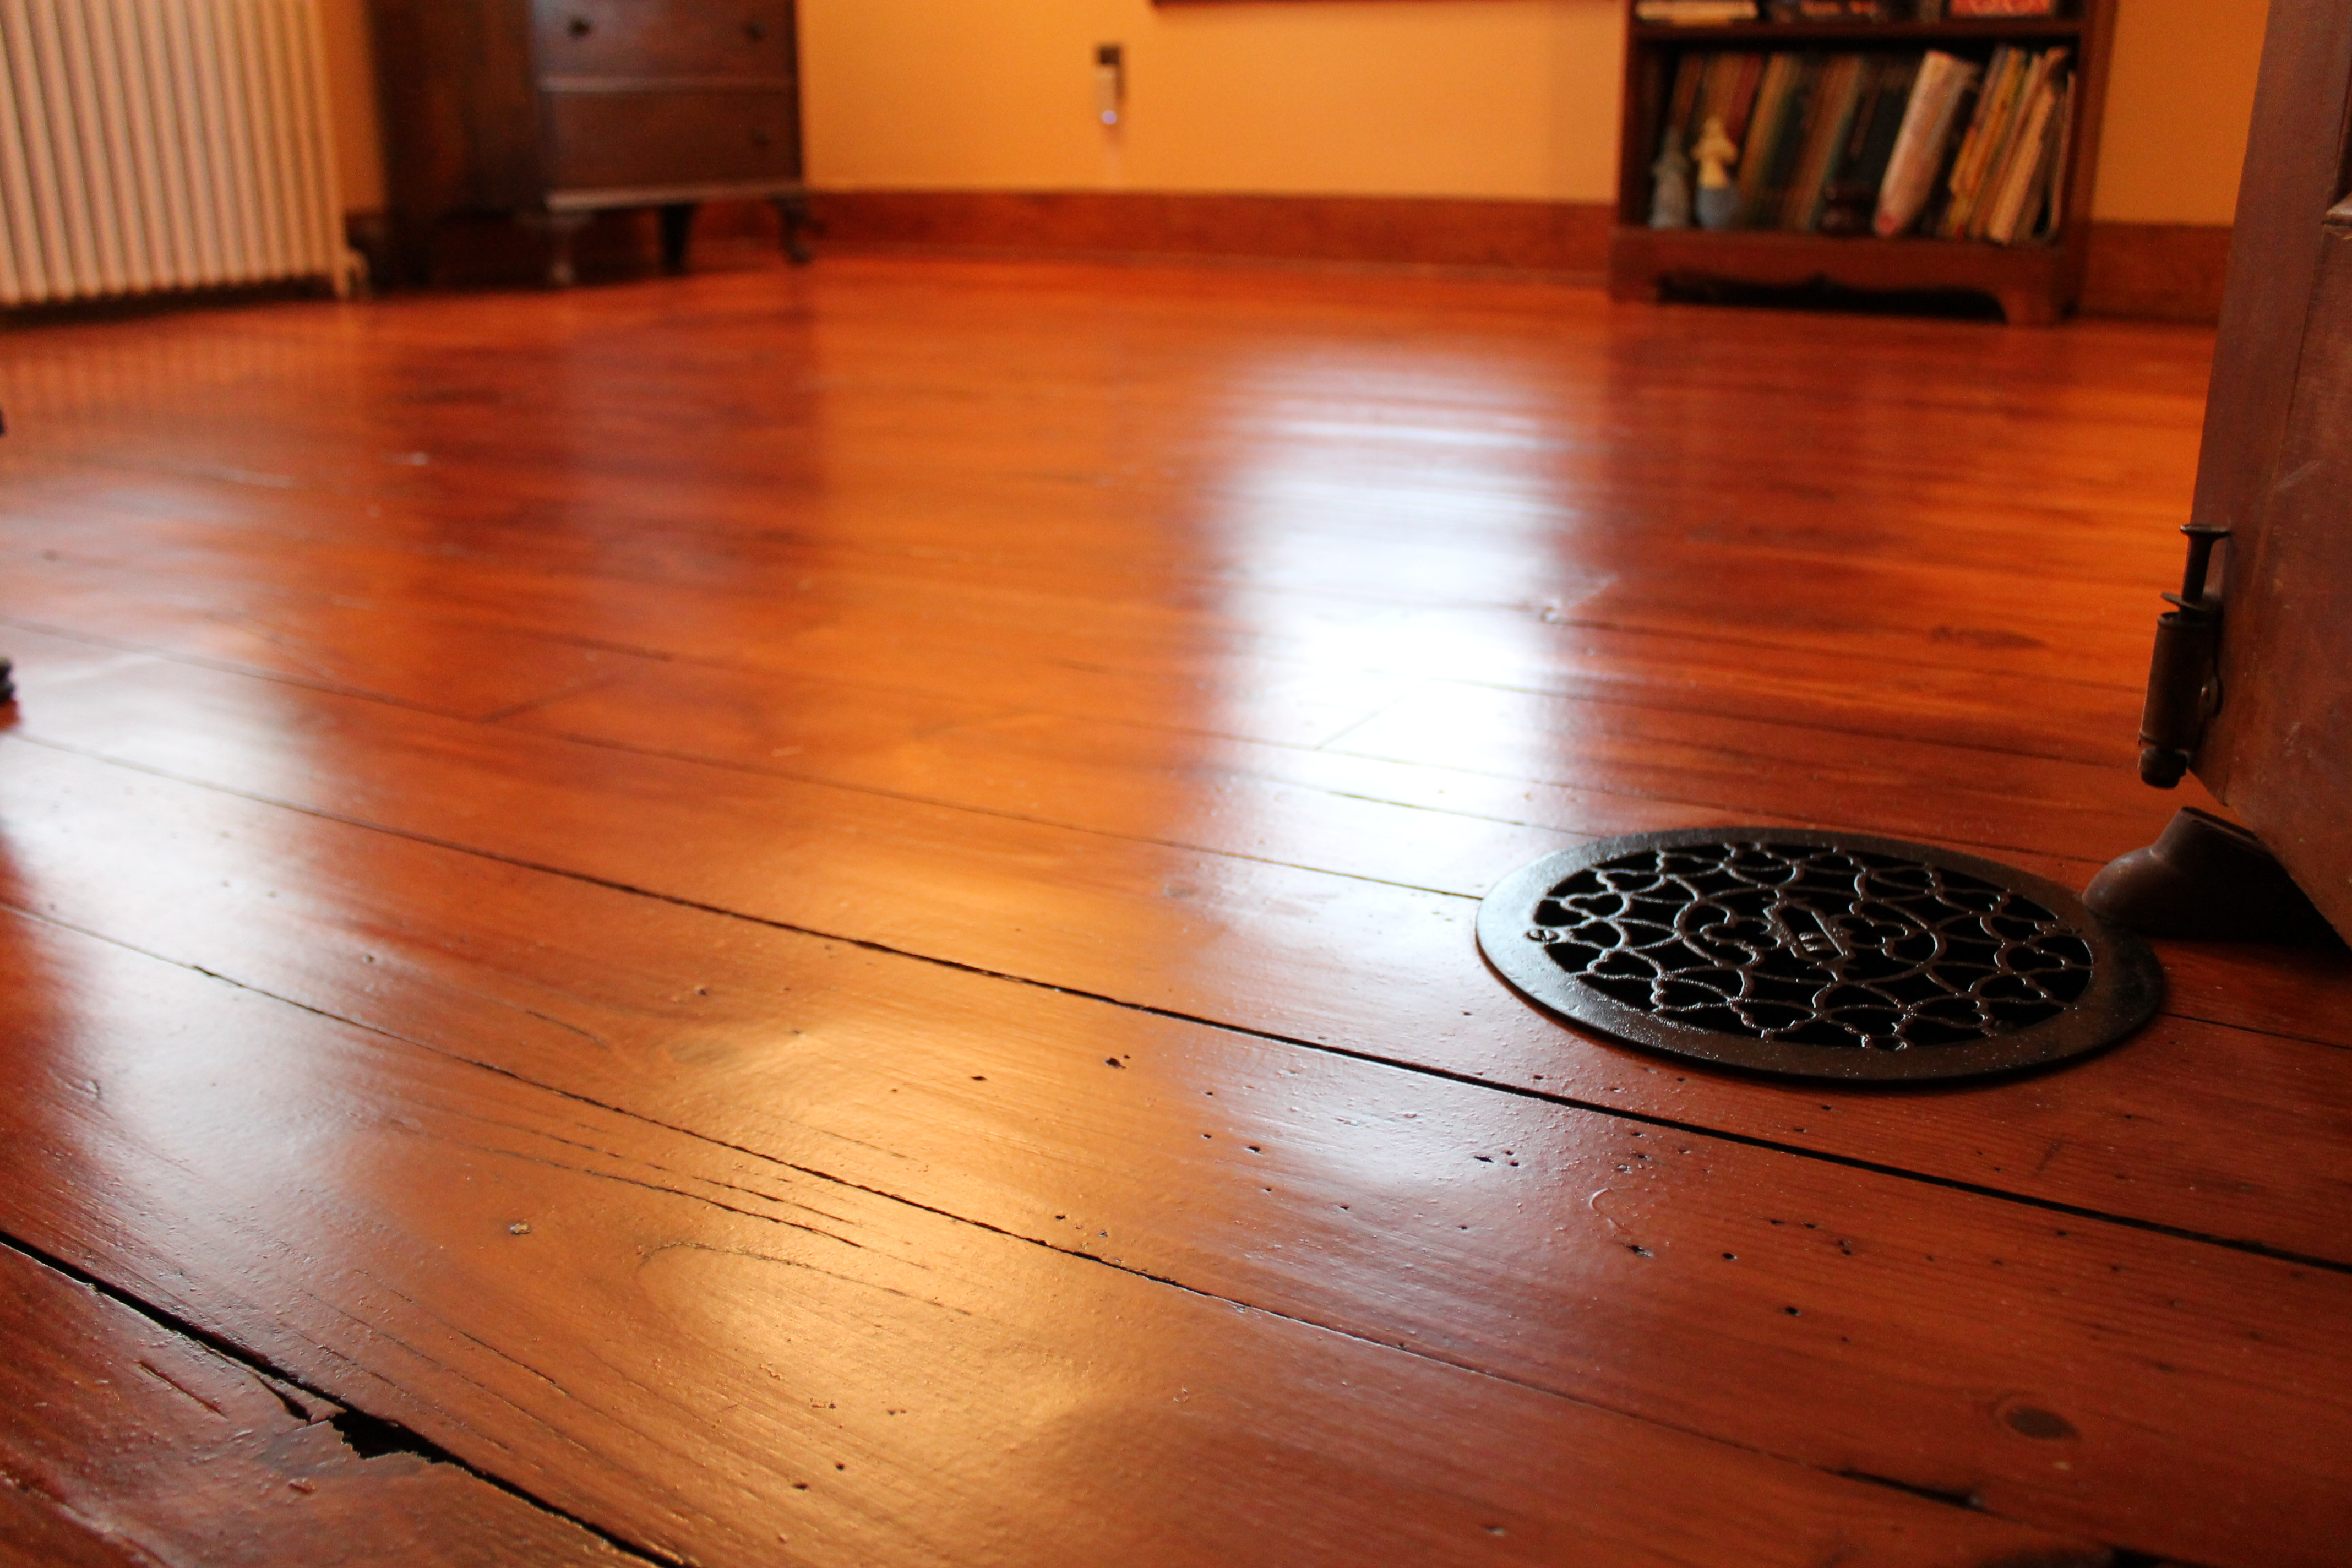 hardwood floor refinishing new york of floor refinishing company hardwood floors service by cris floor with regard to floor refinishing company hardwood flooring gallery monk s home improvements